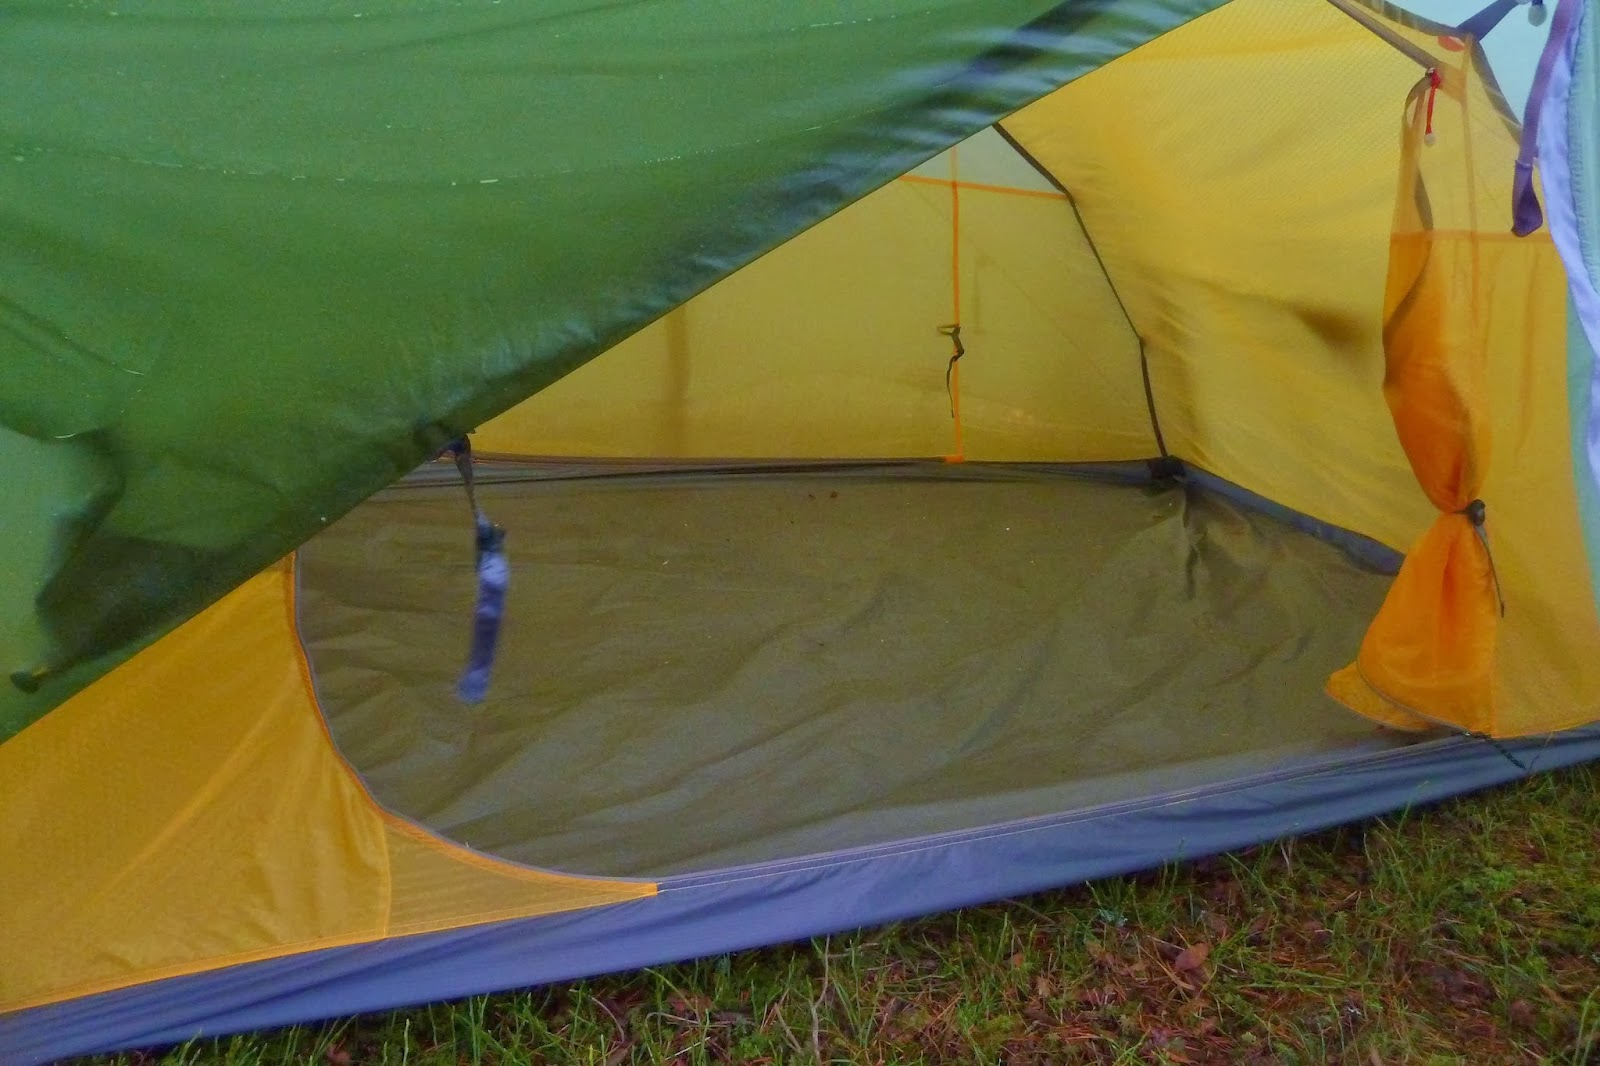 The materials of the outer and the inner are the superlightweight fabrics that we are used to finding on lightweight tents these days. & the outdoor diaries: Tent review - Exped Venus II Ultralight